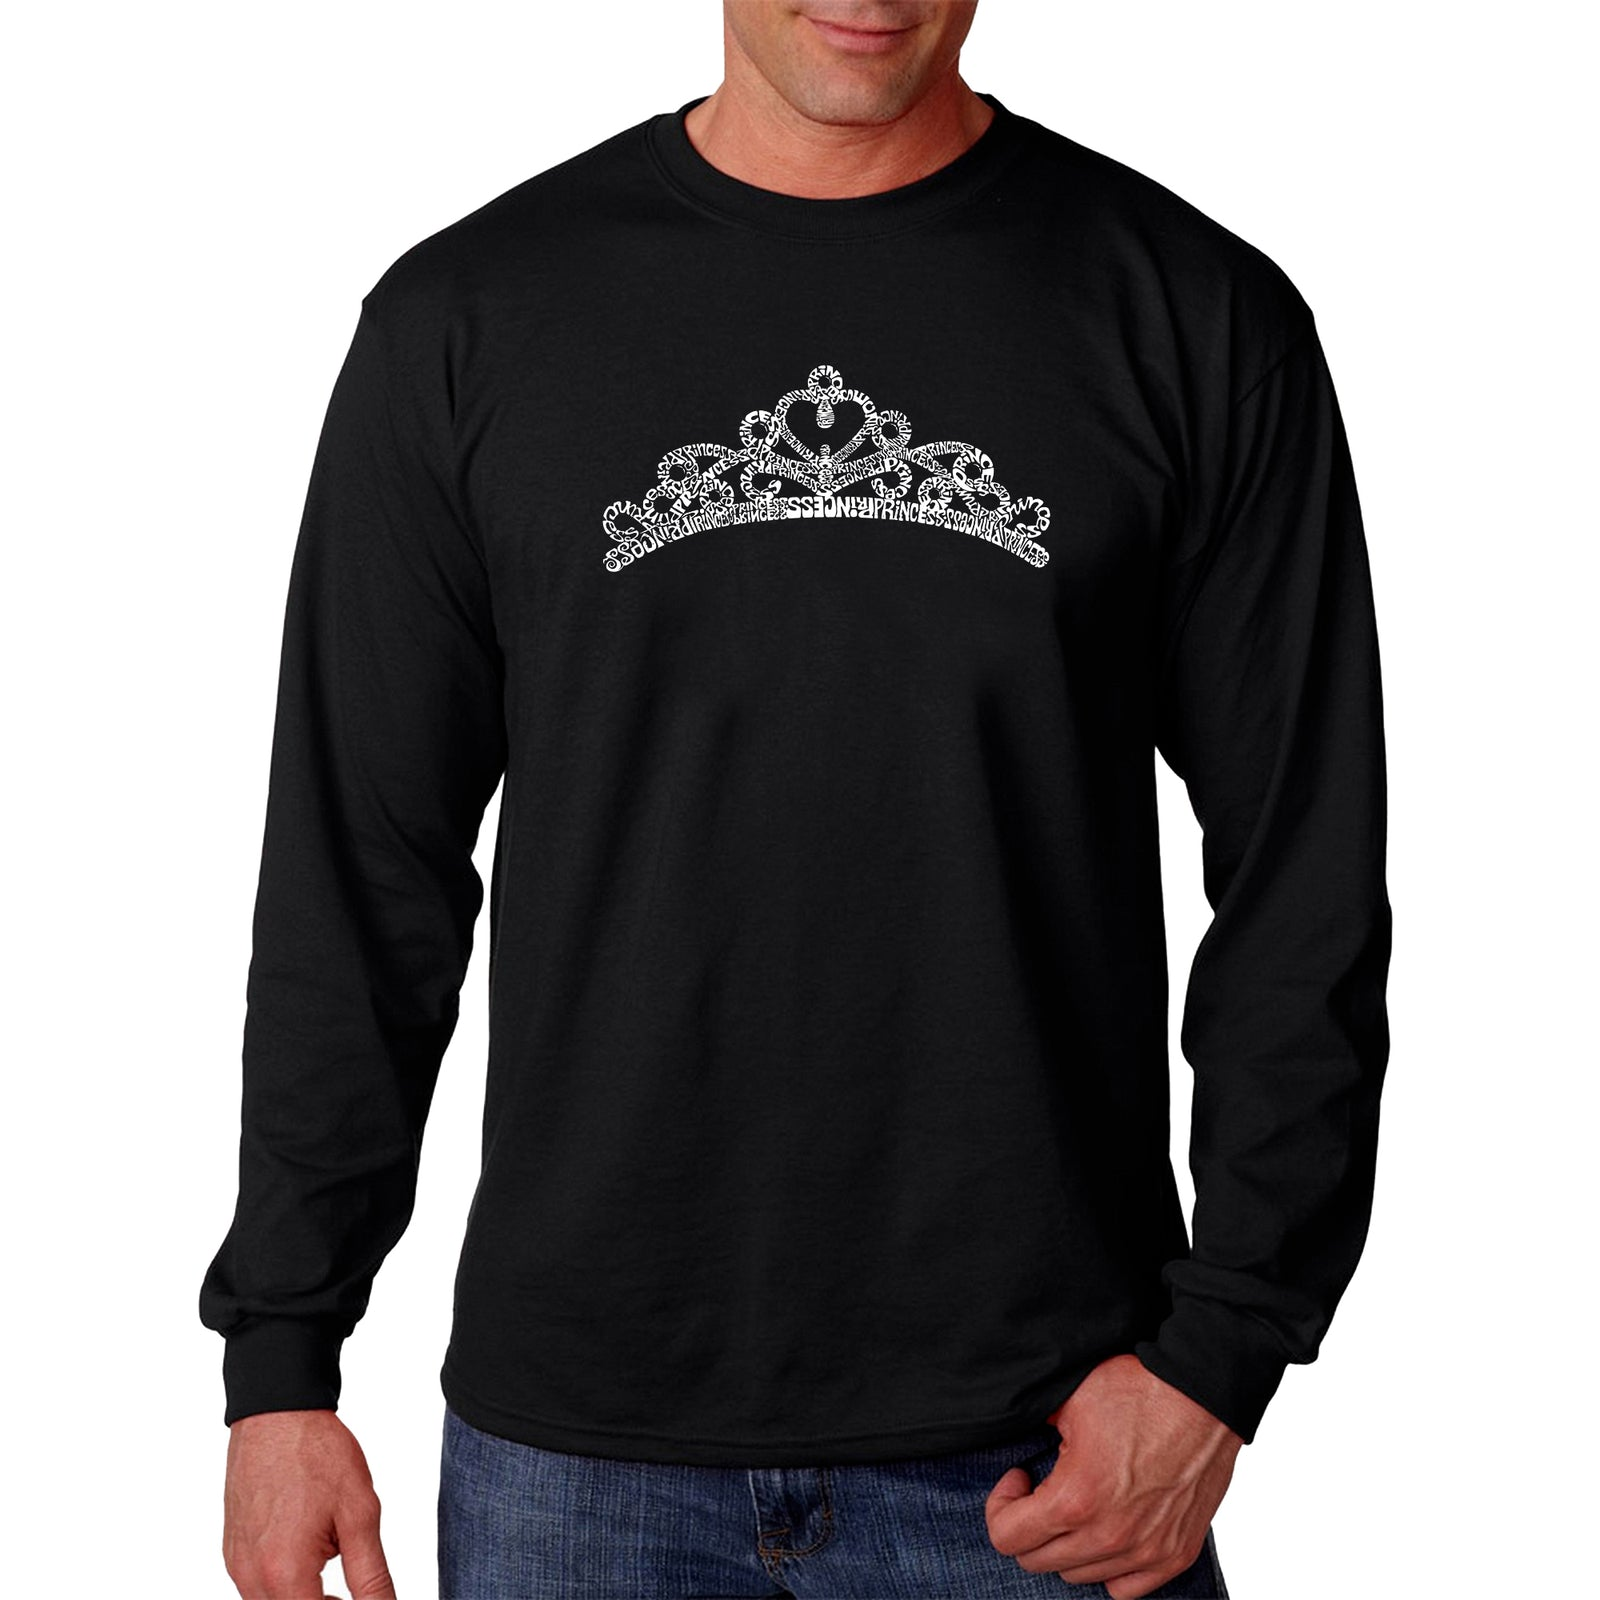 Los Angeles Pop Art Men's Long Sleeve T-shirt - Princess Tiara